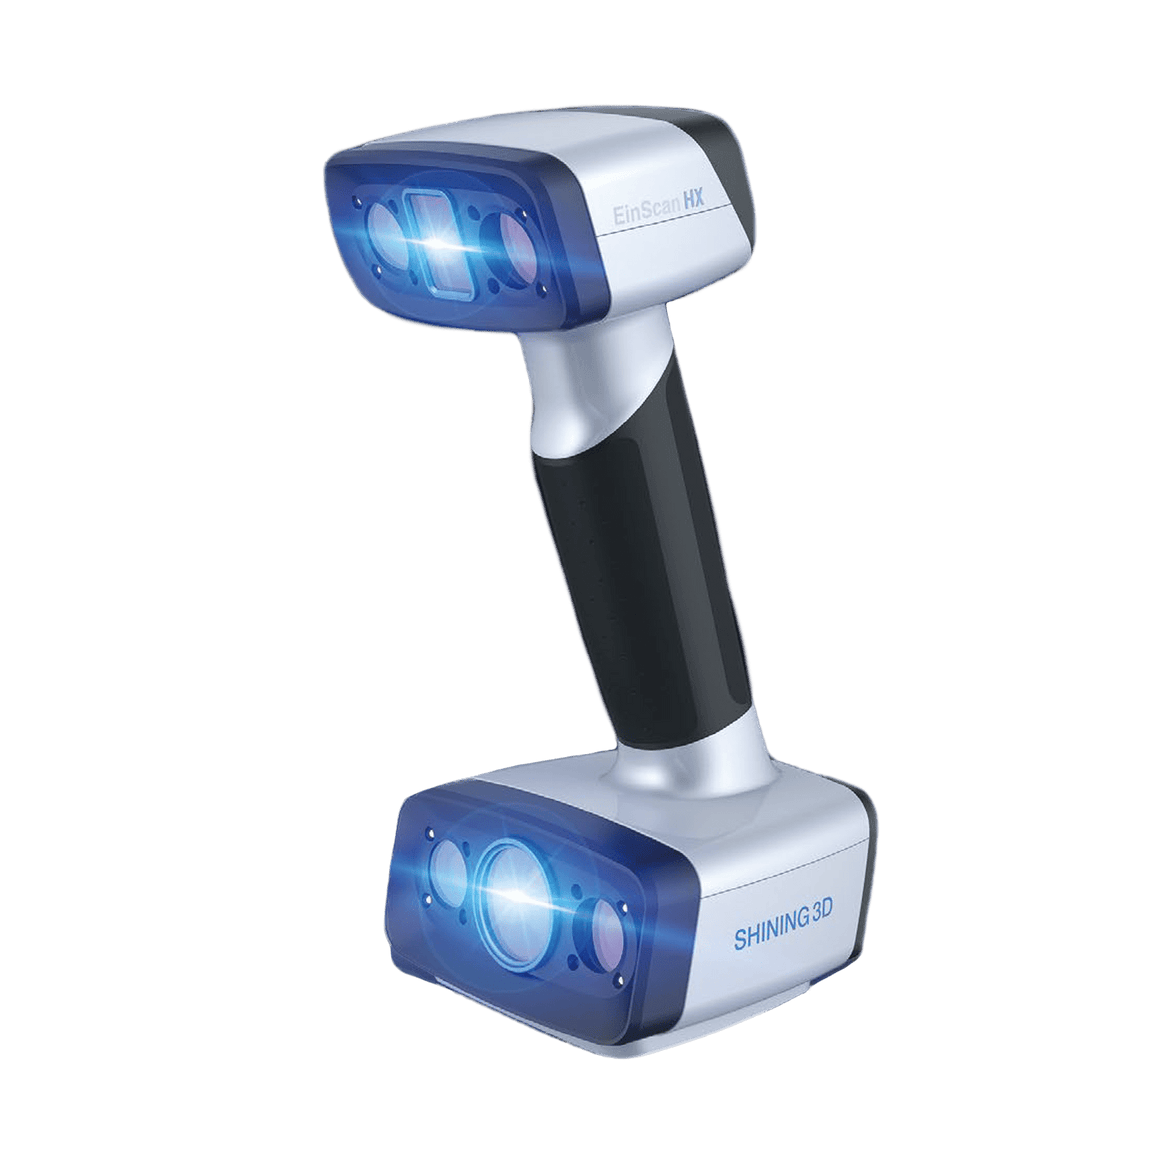 Shining3D - EinScan HX - Hybrid LED and Laser Light 3D Scanner - Shop3D.ca